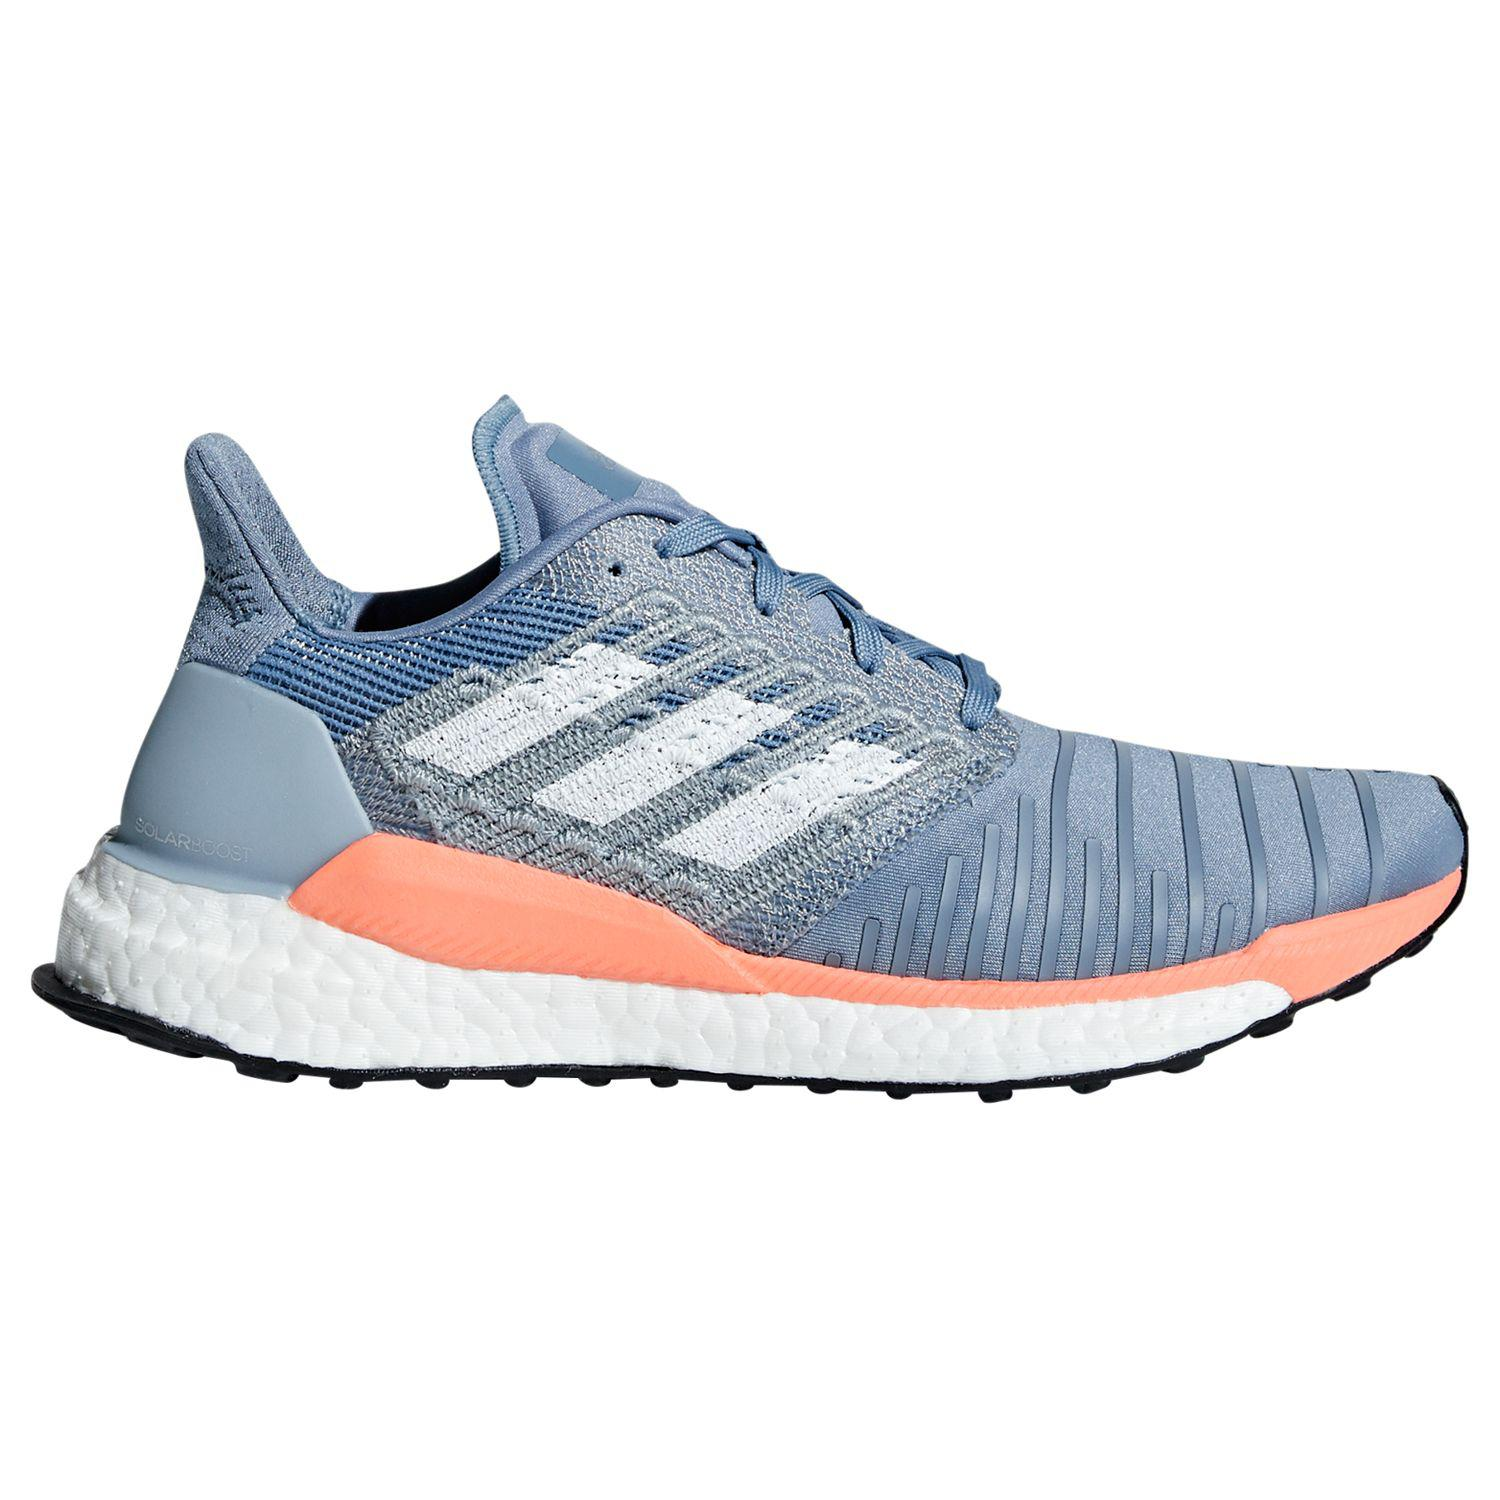 0ff5781f0f7d adidas Solar Boost Women s Running Shoes in Gray - Lyst